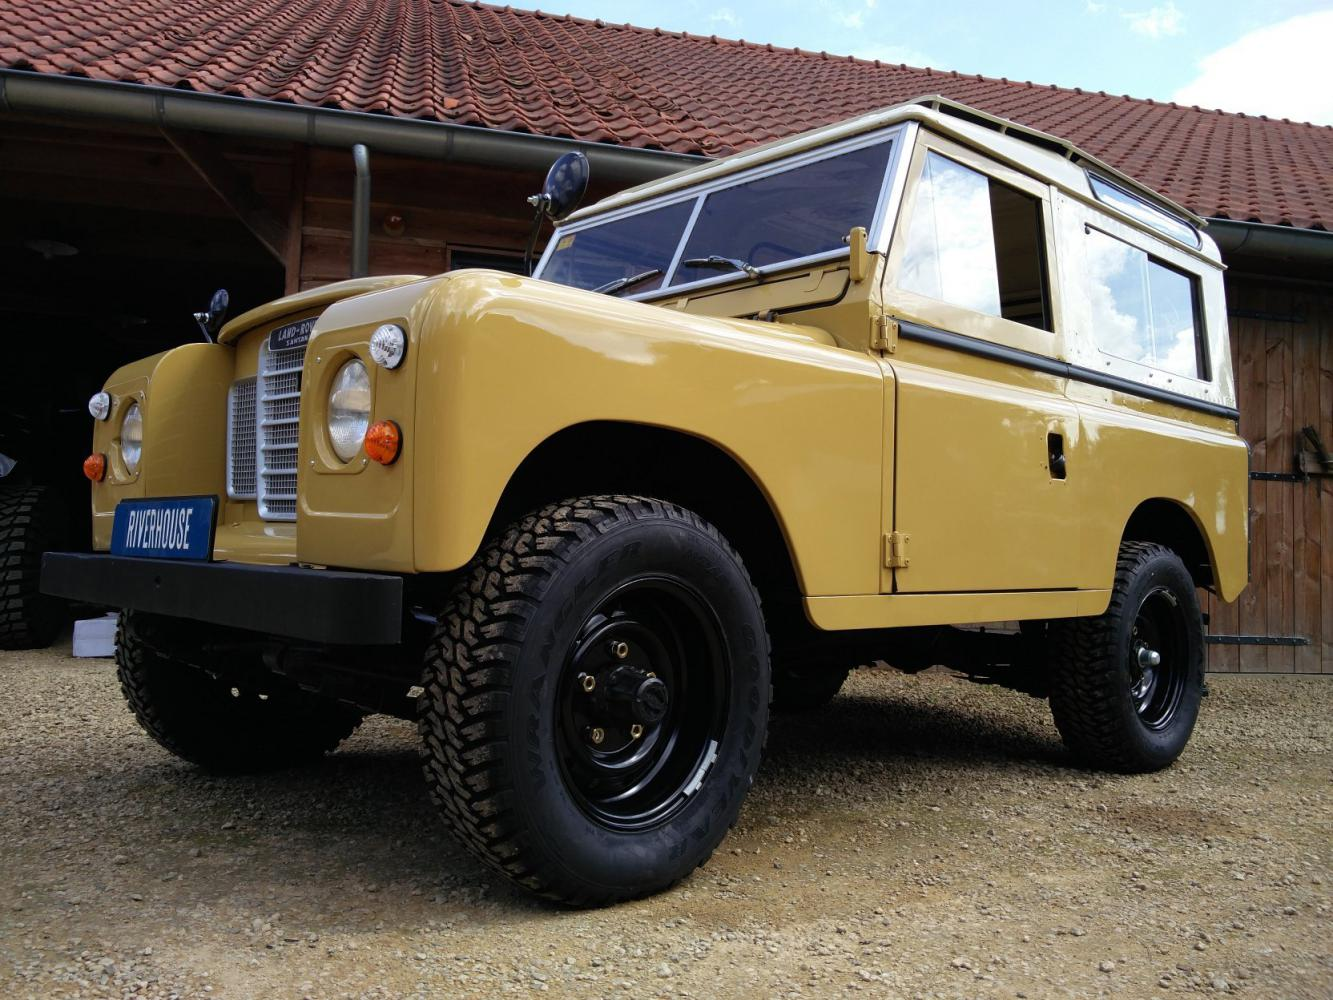 Click image for larger version  Name:1978 LR LHD Santana 88 Hardtop A Mustard Yellow left front low.jpg Views:175 Size:206.1 KB ID:289873